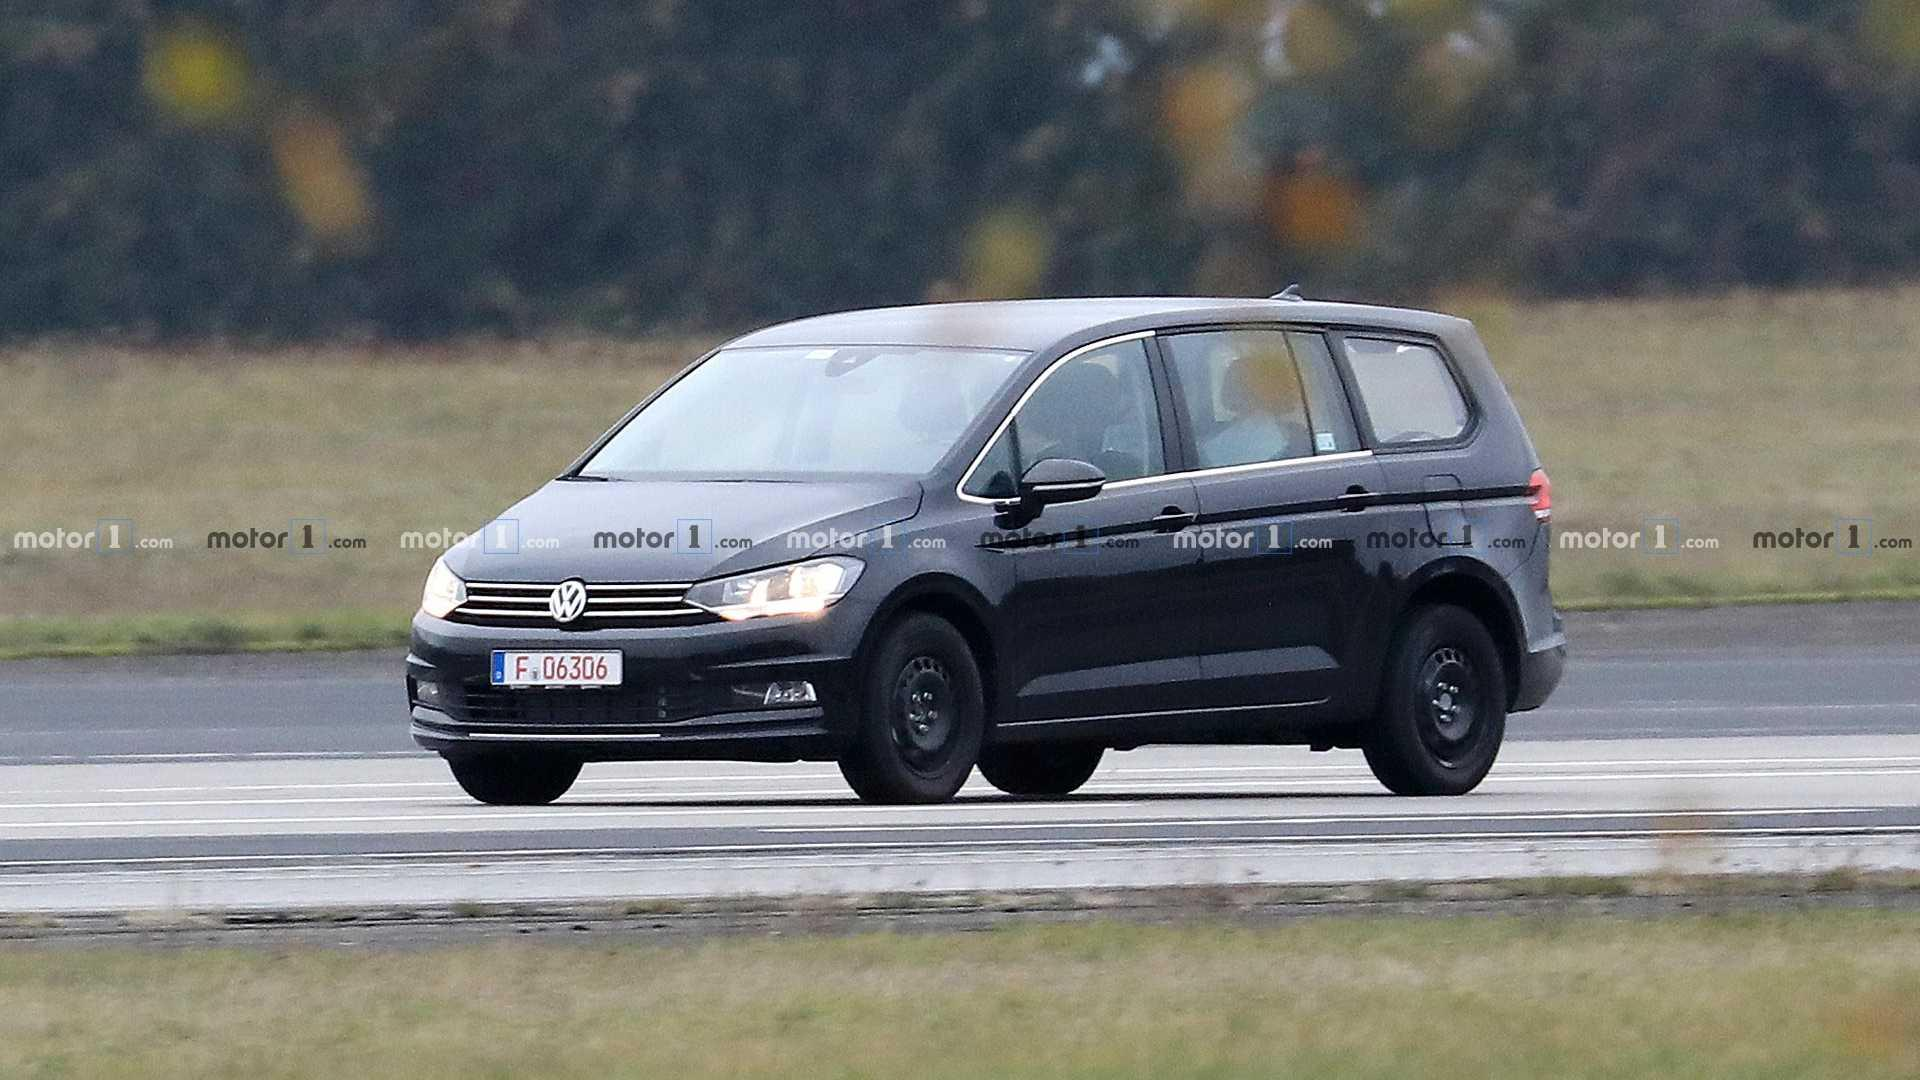 vw variosport spied as crossover alternative. Black Bedroom Furniture Sets. Home Design Ideas